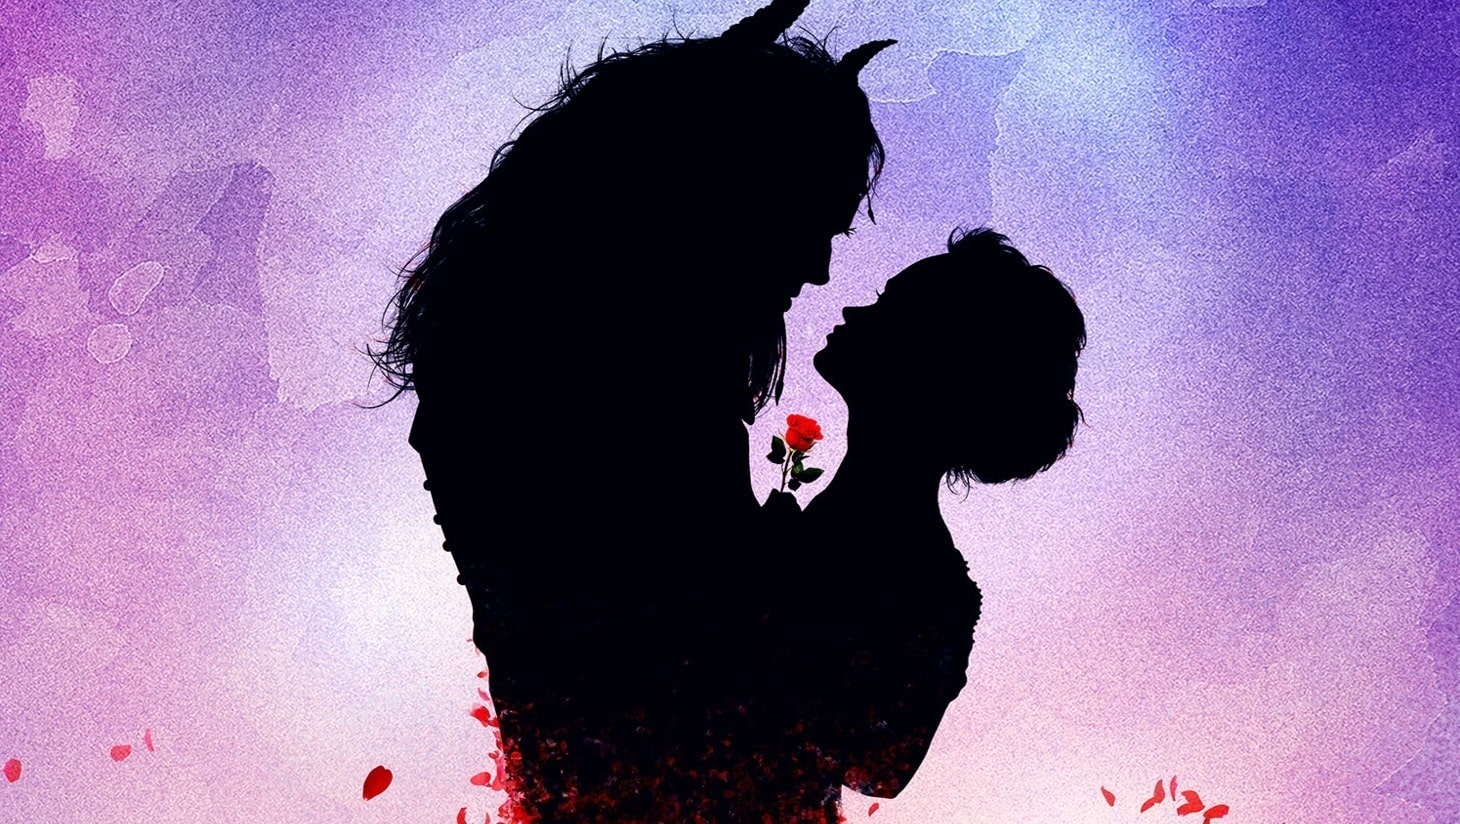 Belle and Beast silhouetted holding a red rose